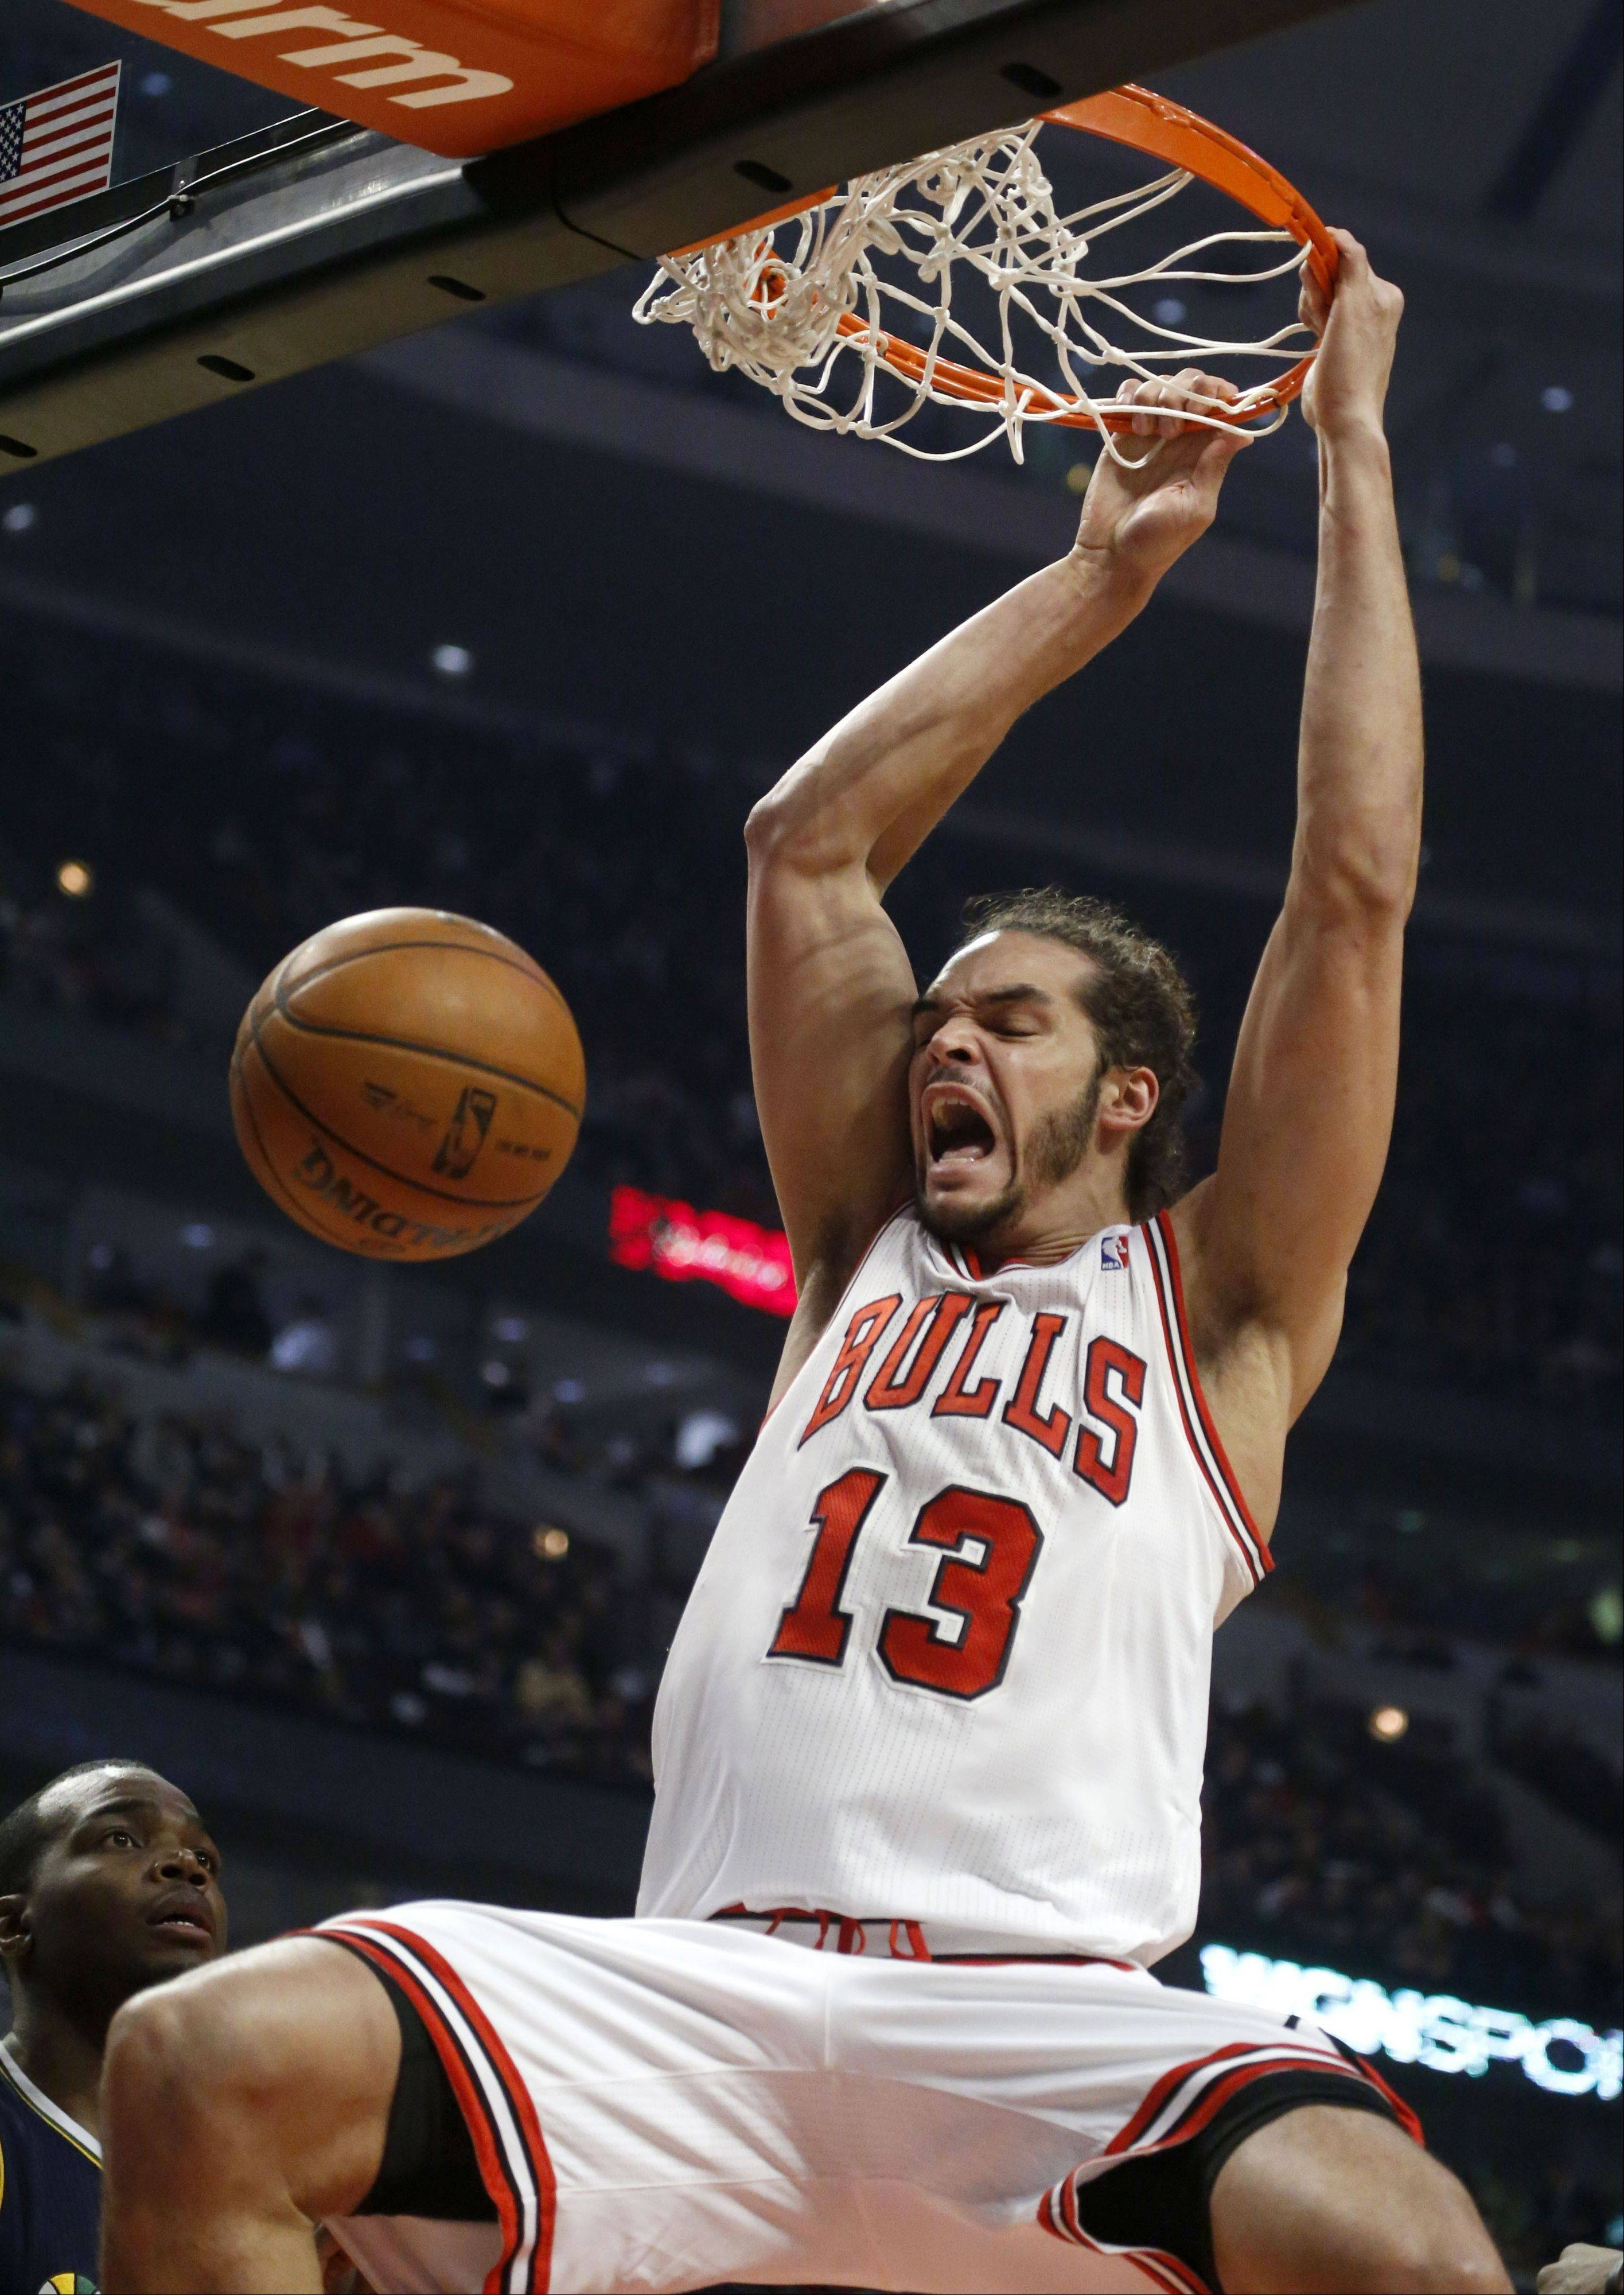 Chicago Bulls center Joakim Noah dunks during the first half of an NBA basketball game against the Utah Jazz, Friday, March 8, 2013, in Chicago.